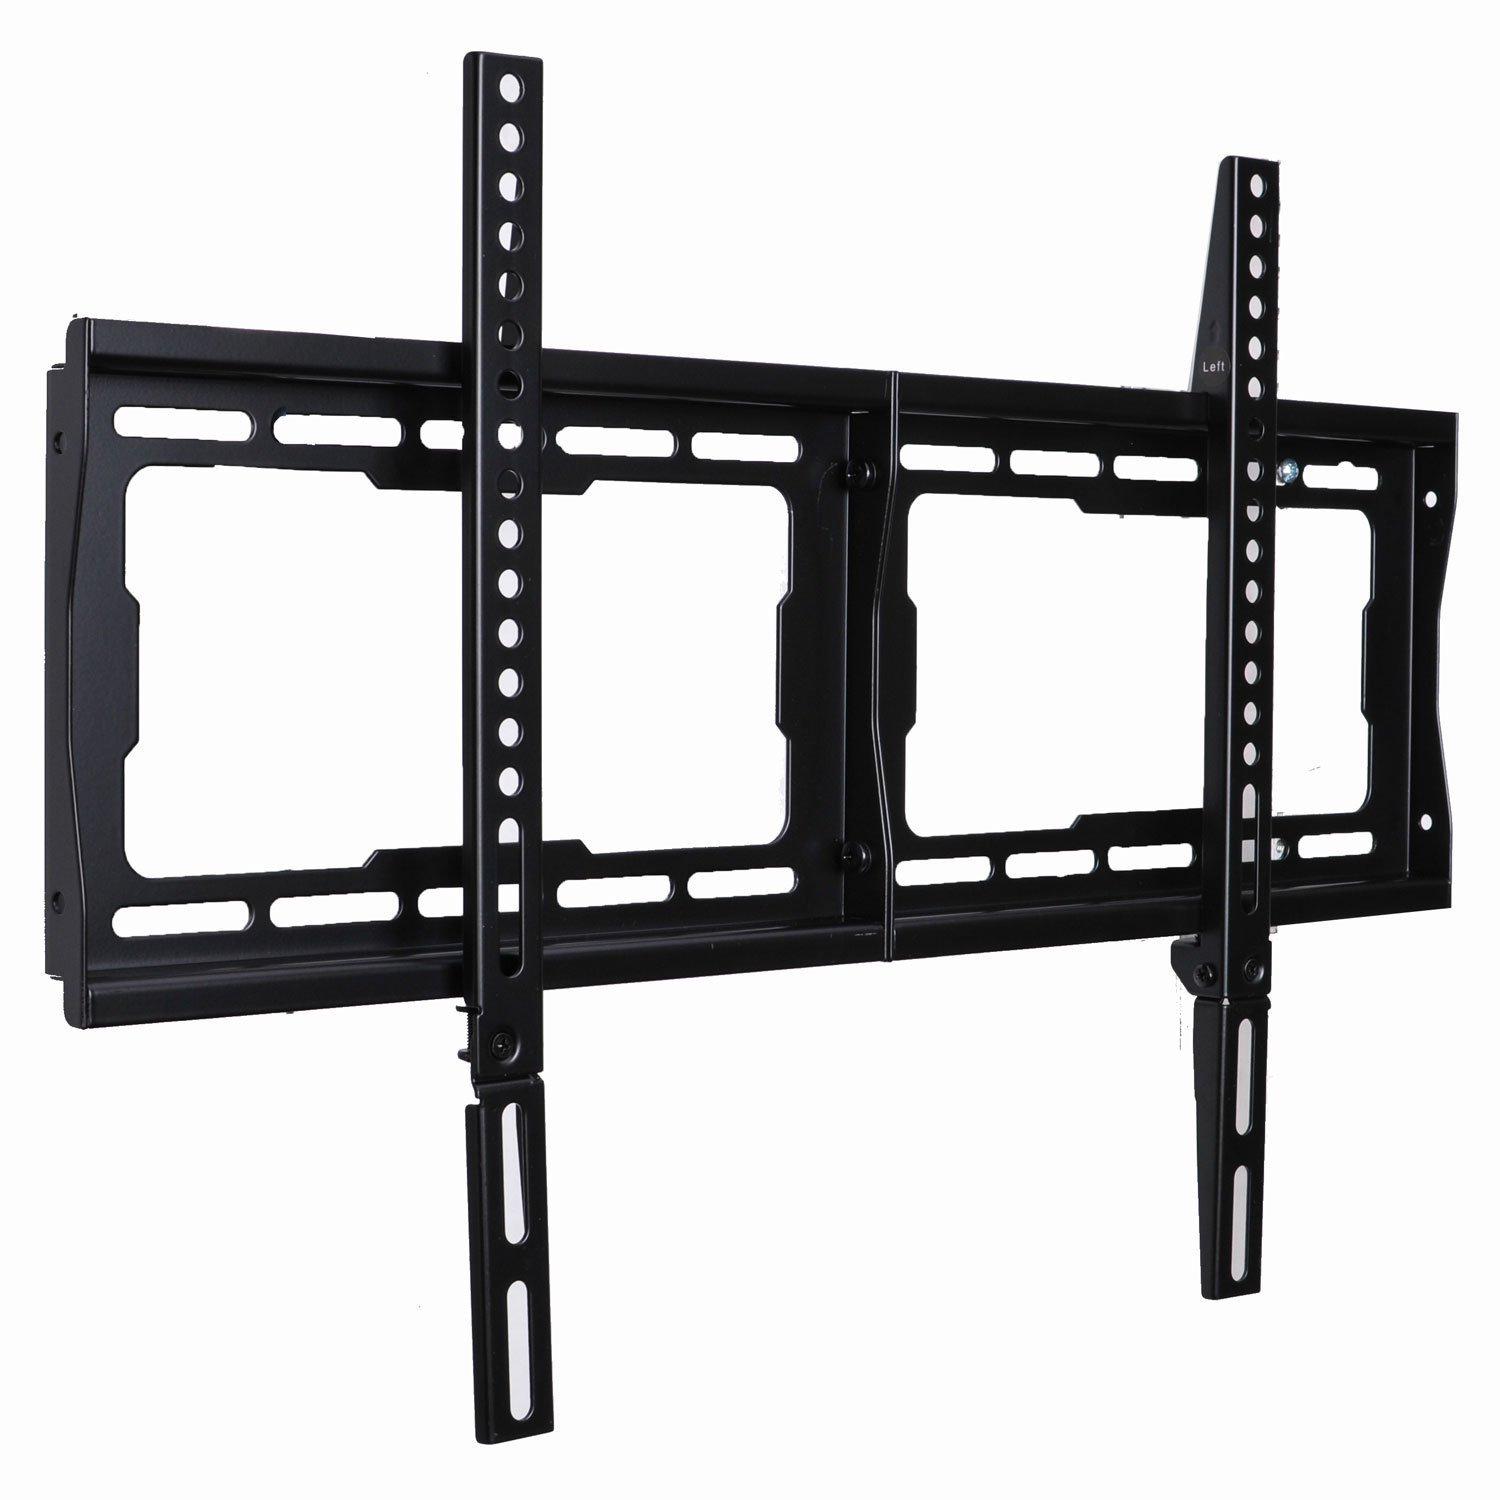 Amazon.com: VideoSecu Low Profile TV Wall Mount Bracket for Most 32